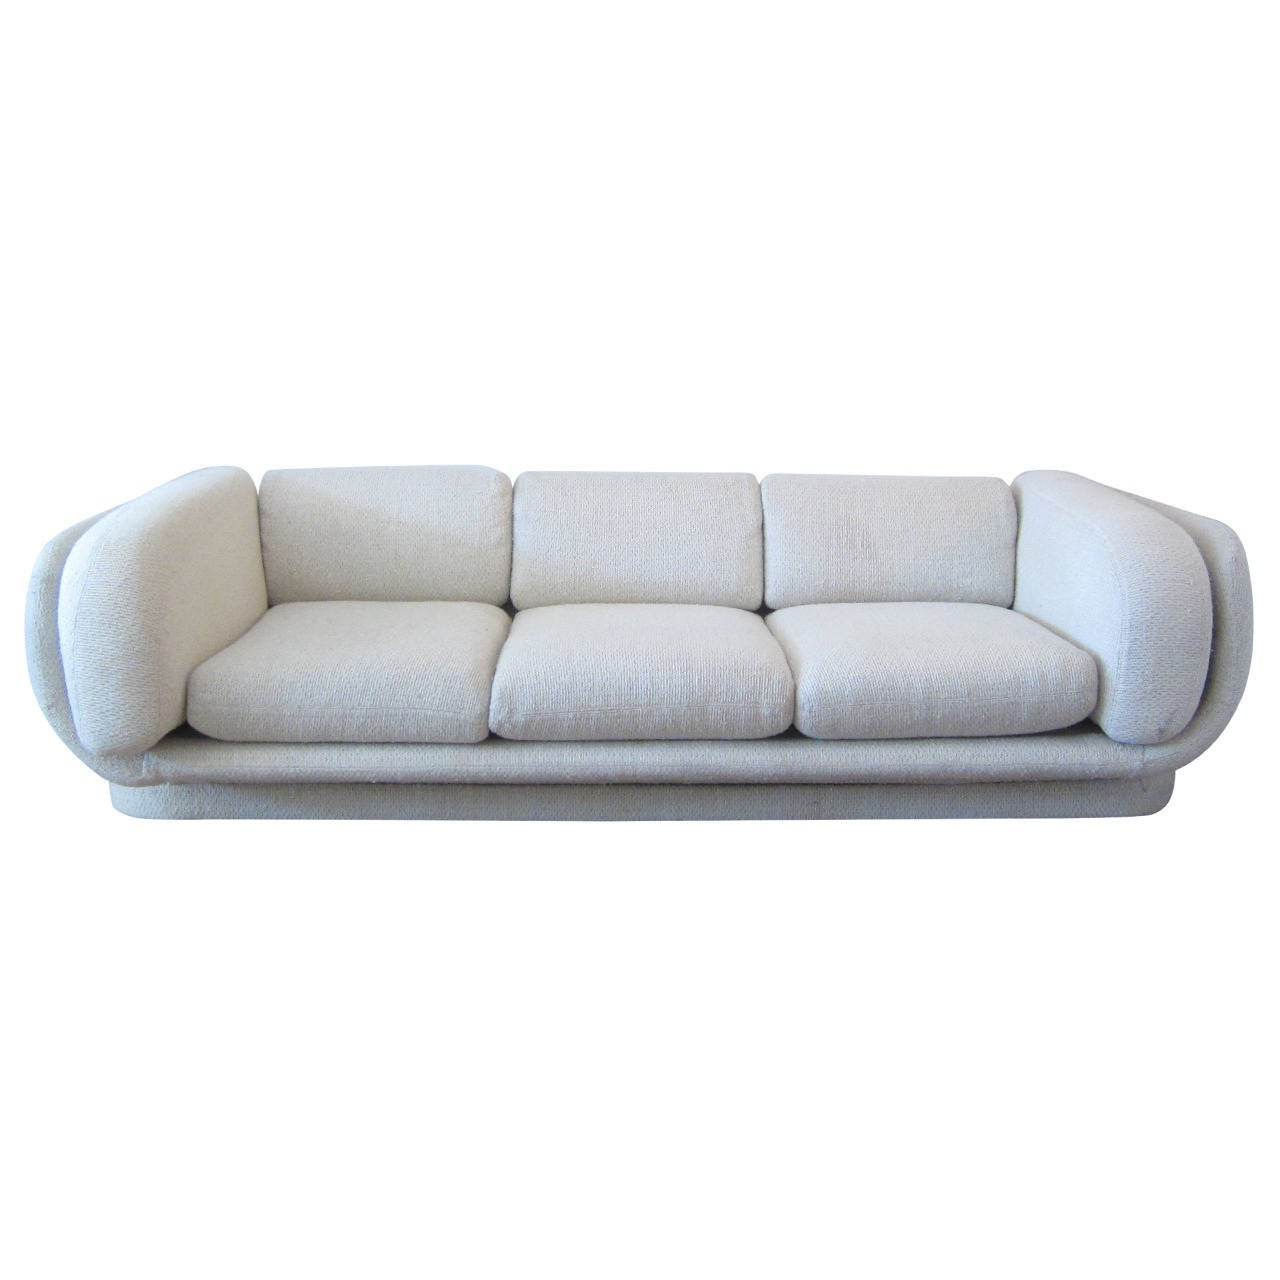 Modern Curved Sofas Mid Century Modern Curved Sofa With Platform Base At 1stdibs Curved Armed